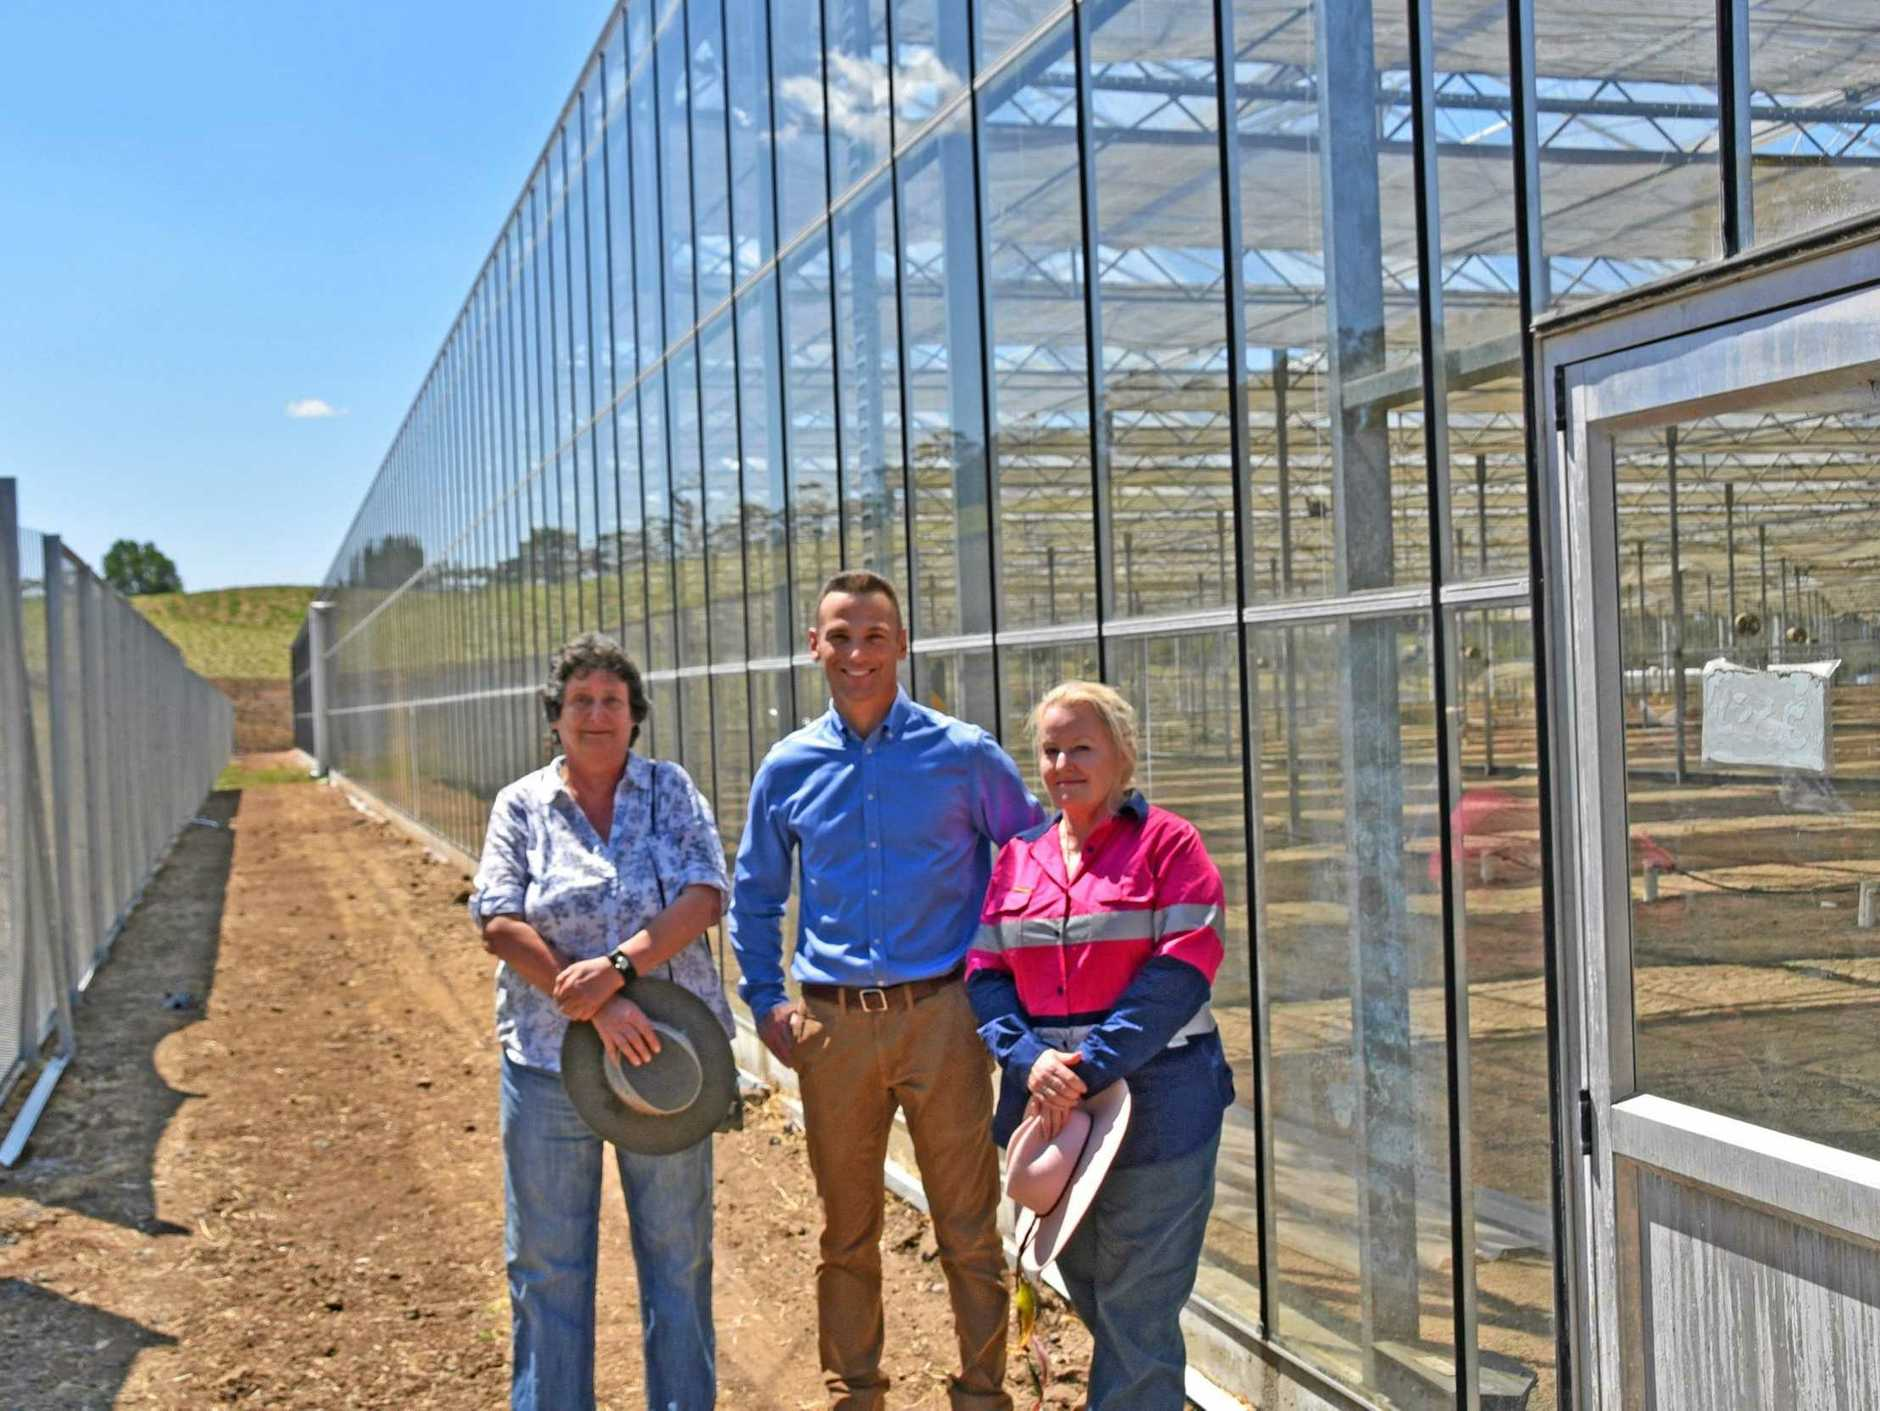 CANNABIS FACILITY: Lismore City Council Deputy Mayor Darlene Cook, Operations Manger of CannaPacific Tim Ritchie and Lismore City Council General Manager Shelley Oldham.